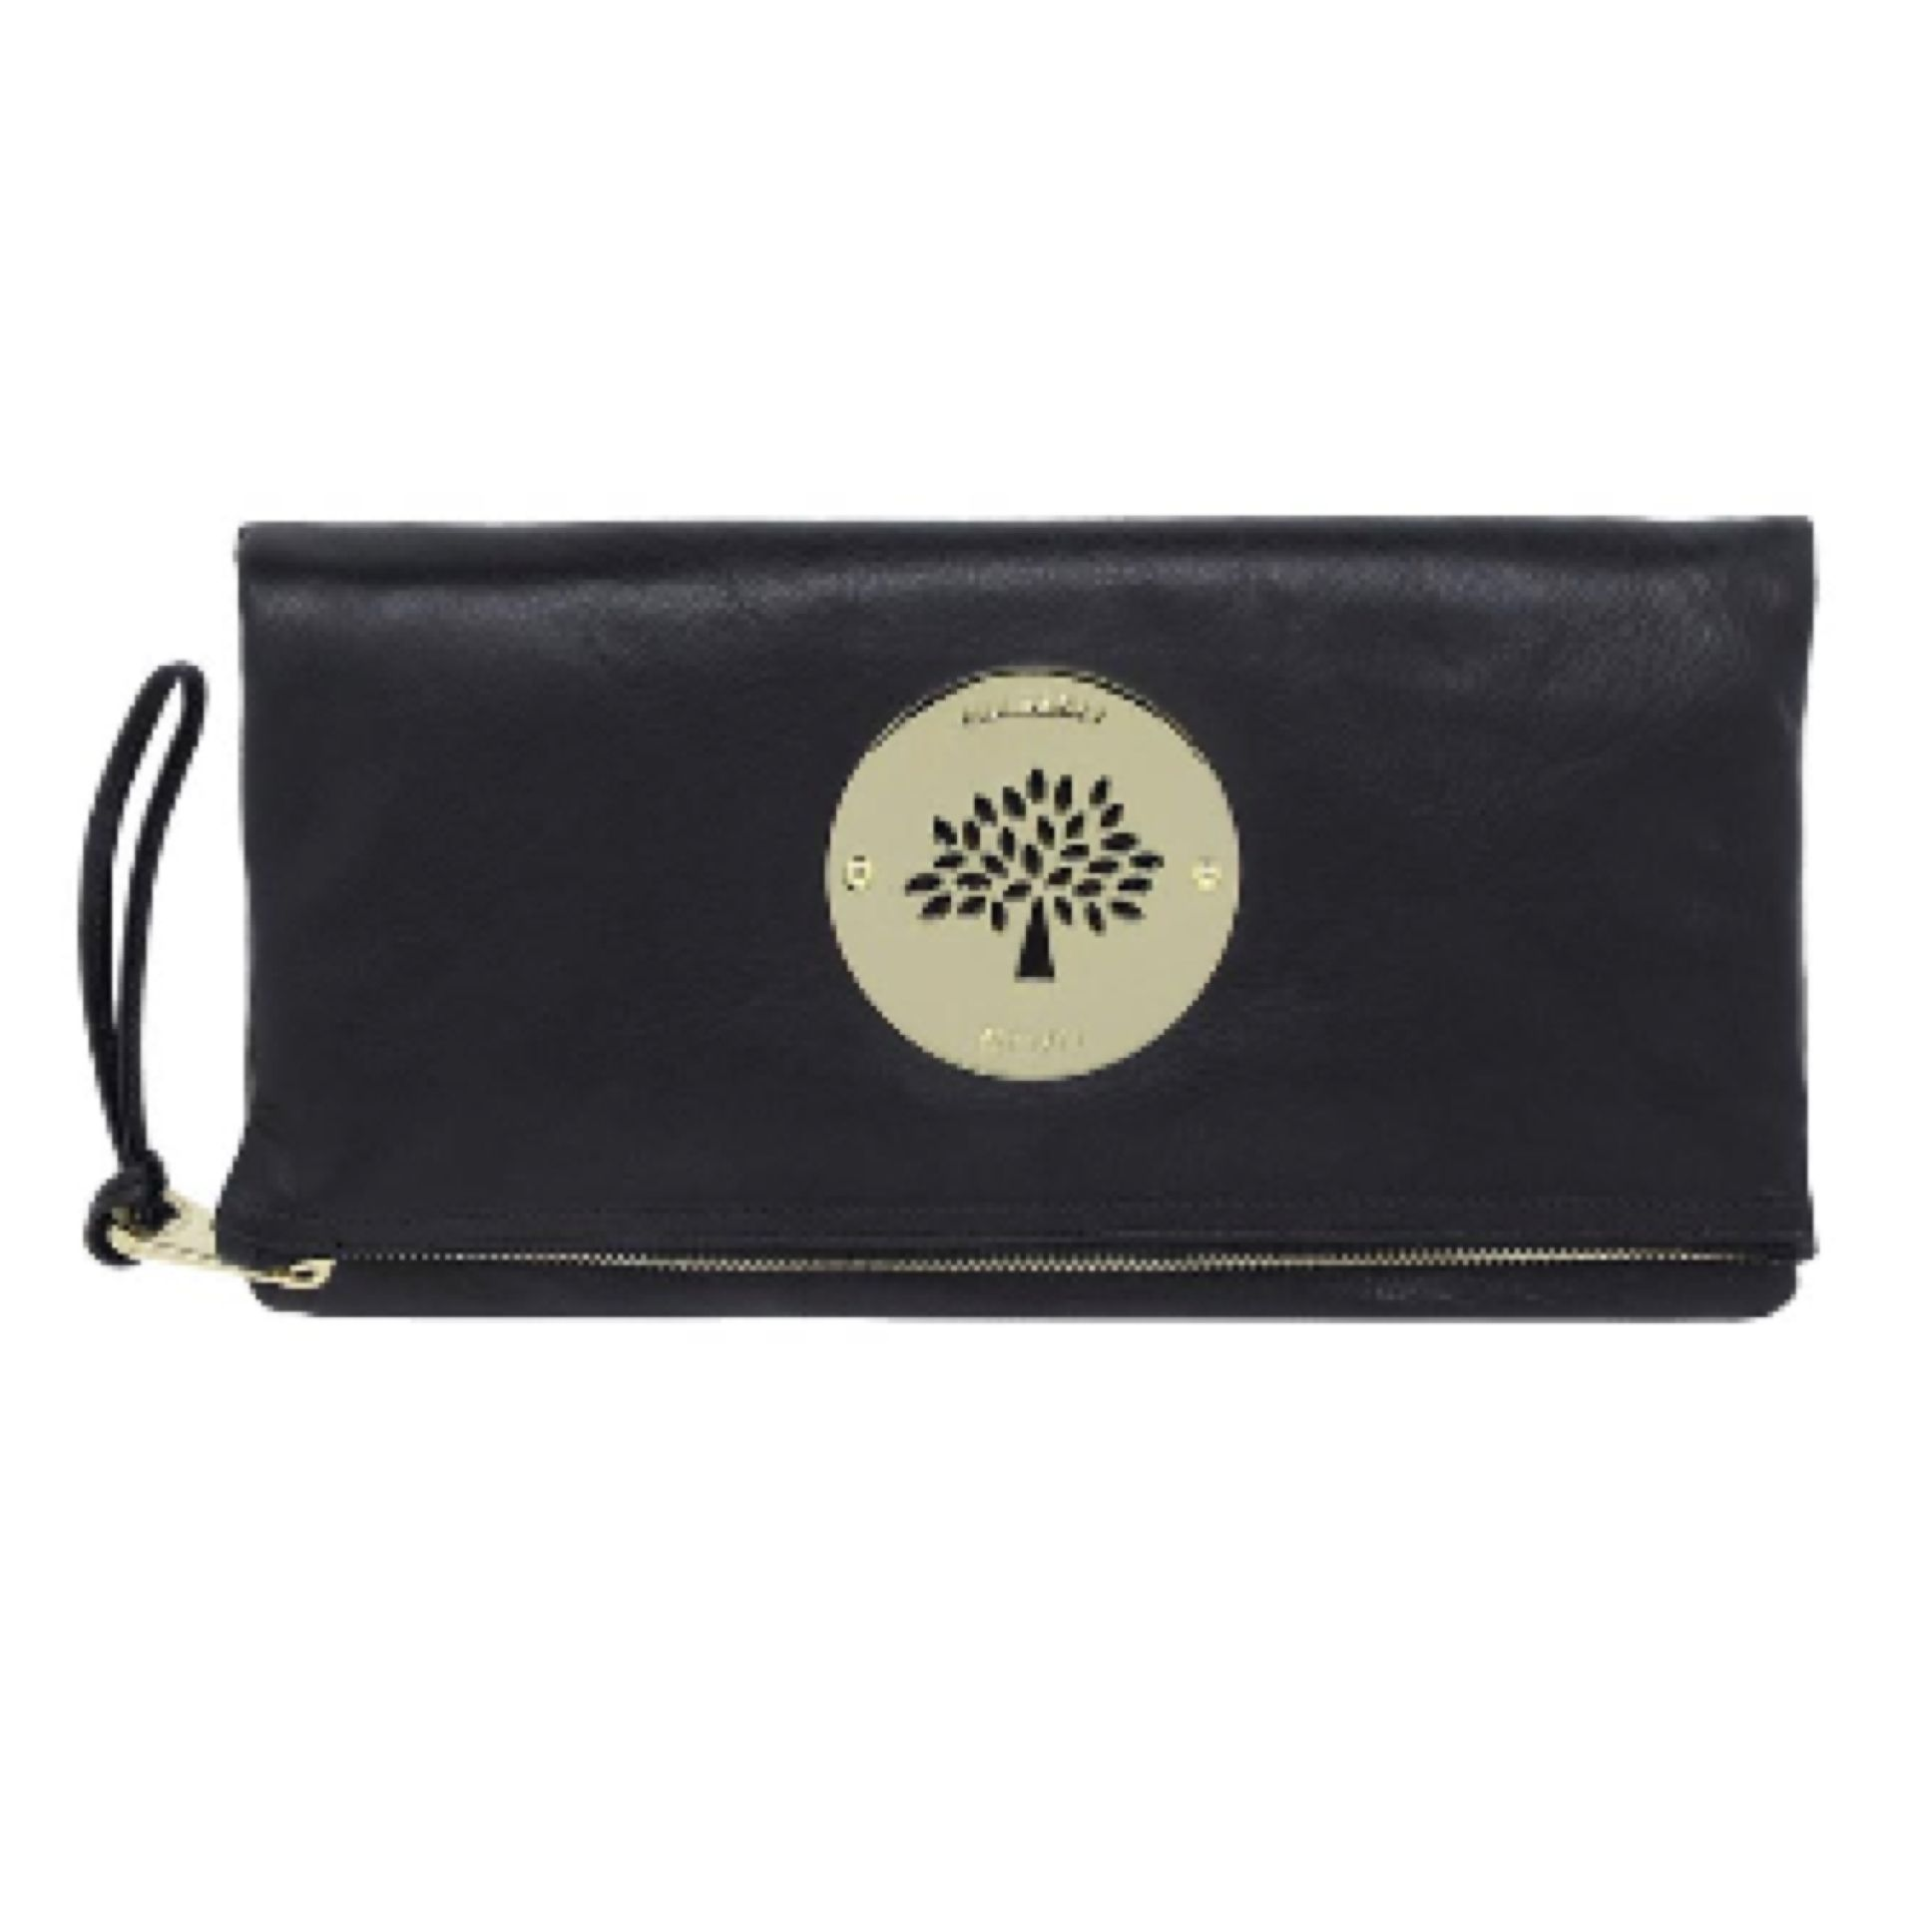 e6e6cb6538 Mulberry Daria Foldover Clutch | Outfitted | Mulberry bag, Mulberry ...